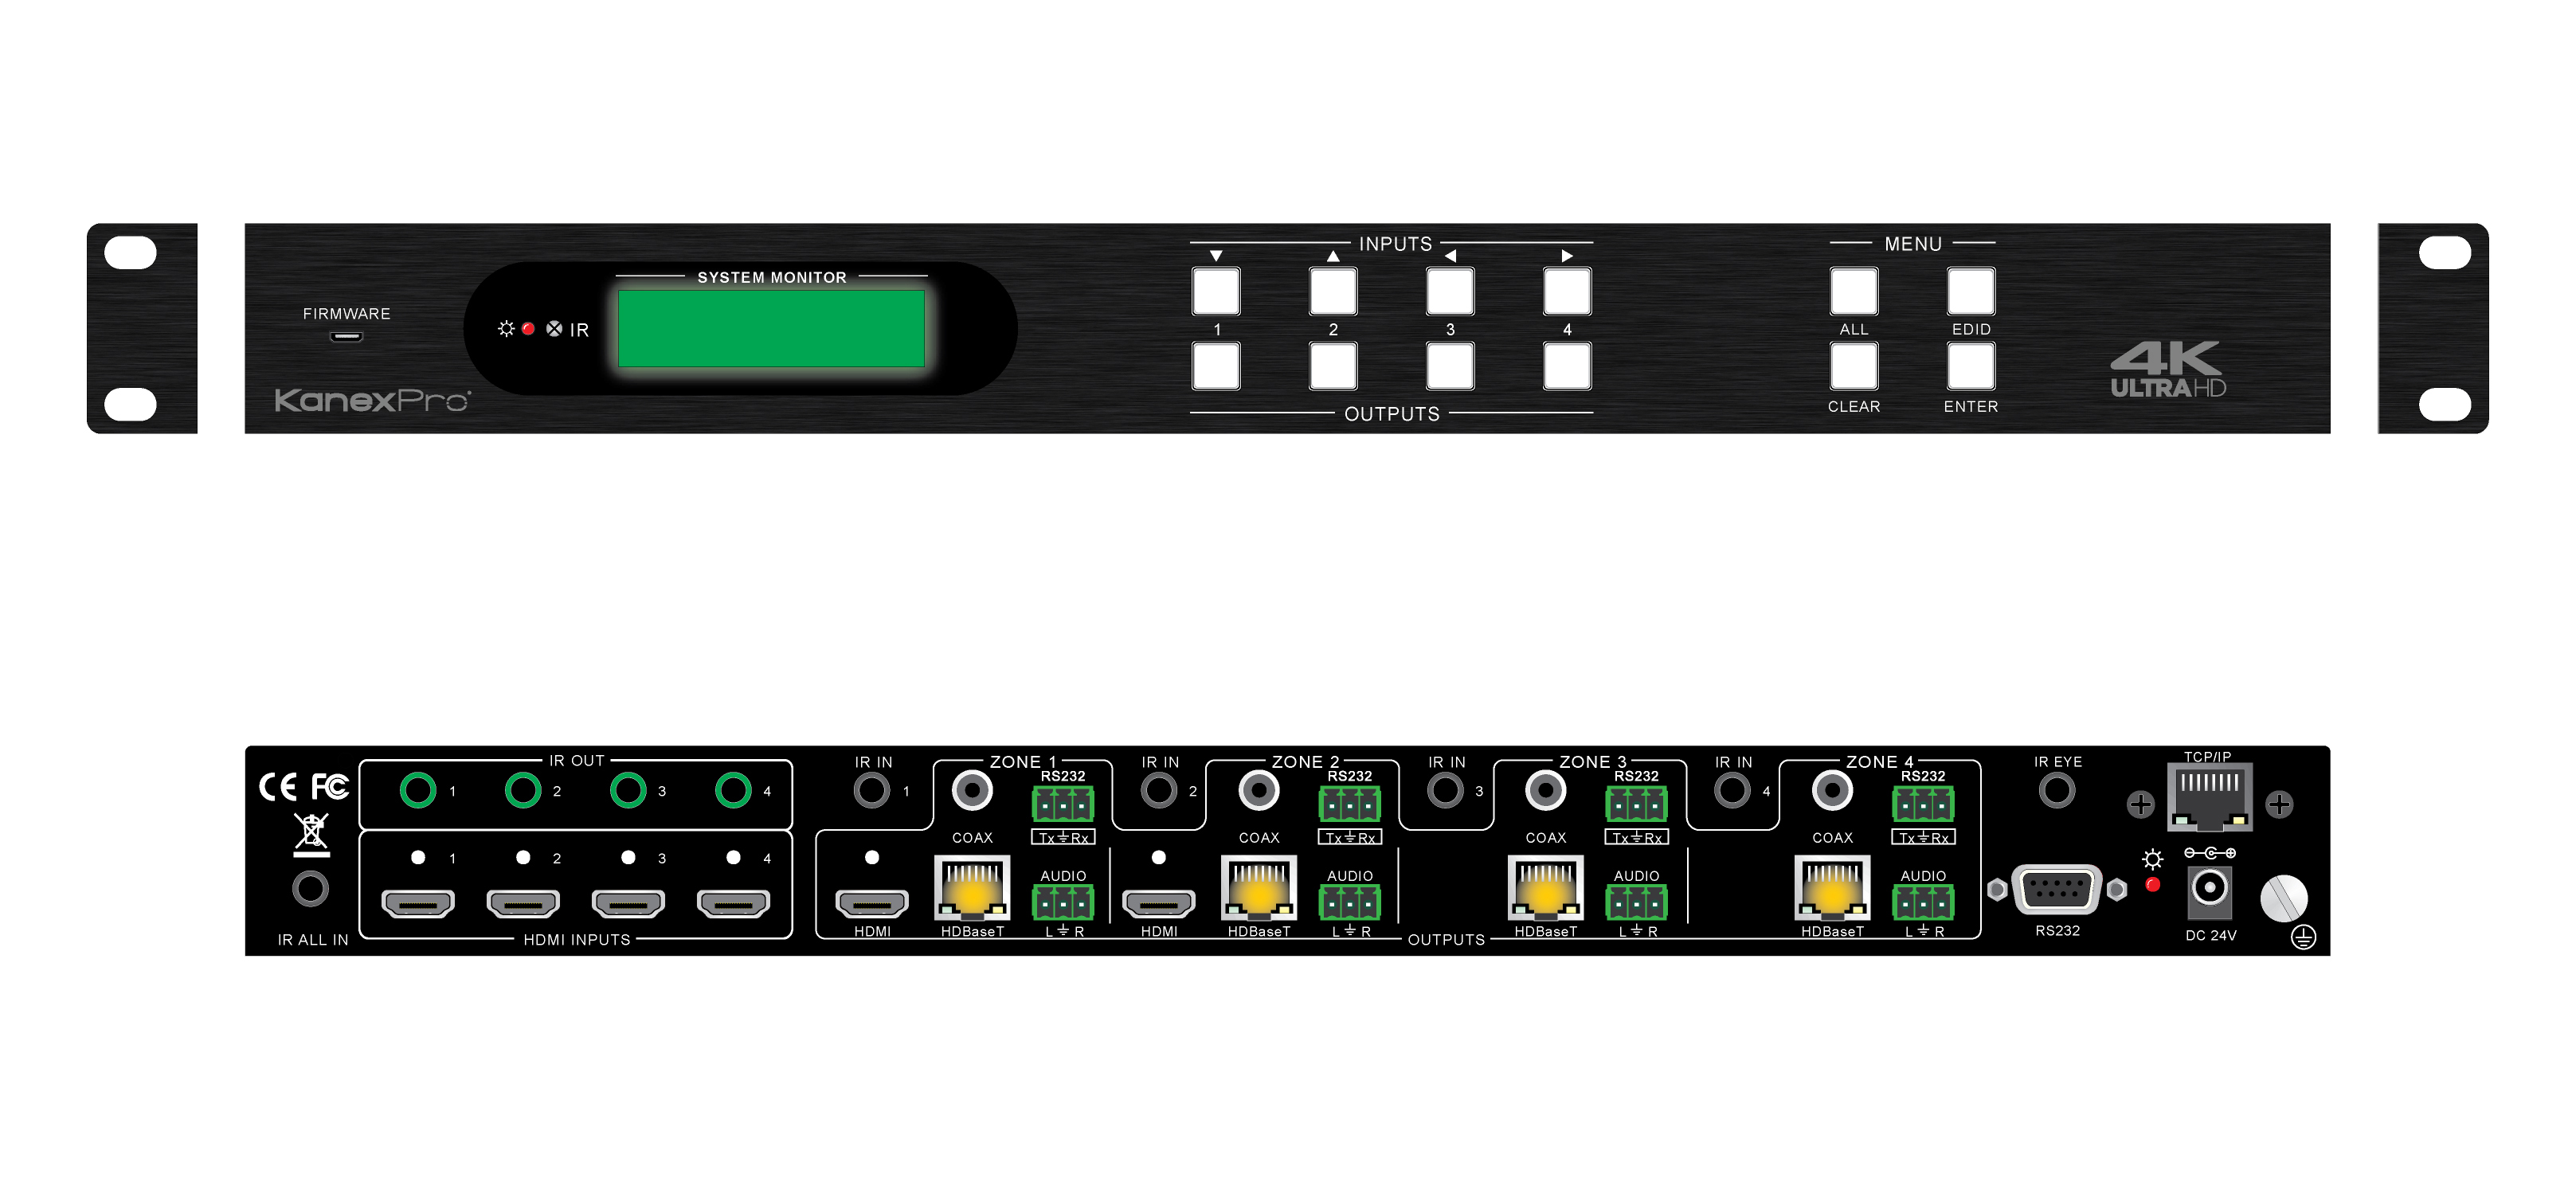 4k 60 Hdbaset 4x4 Matrix Switcher